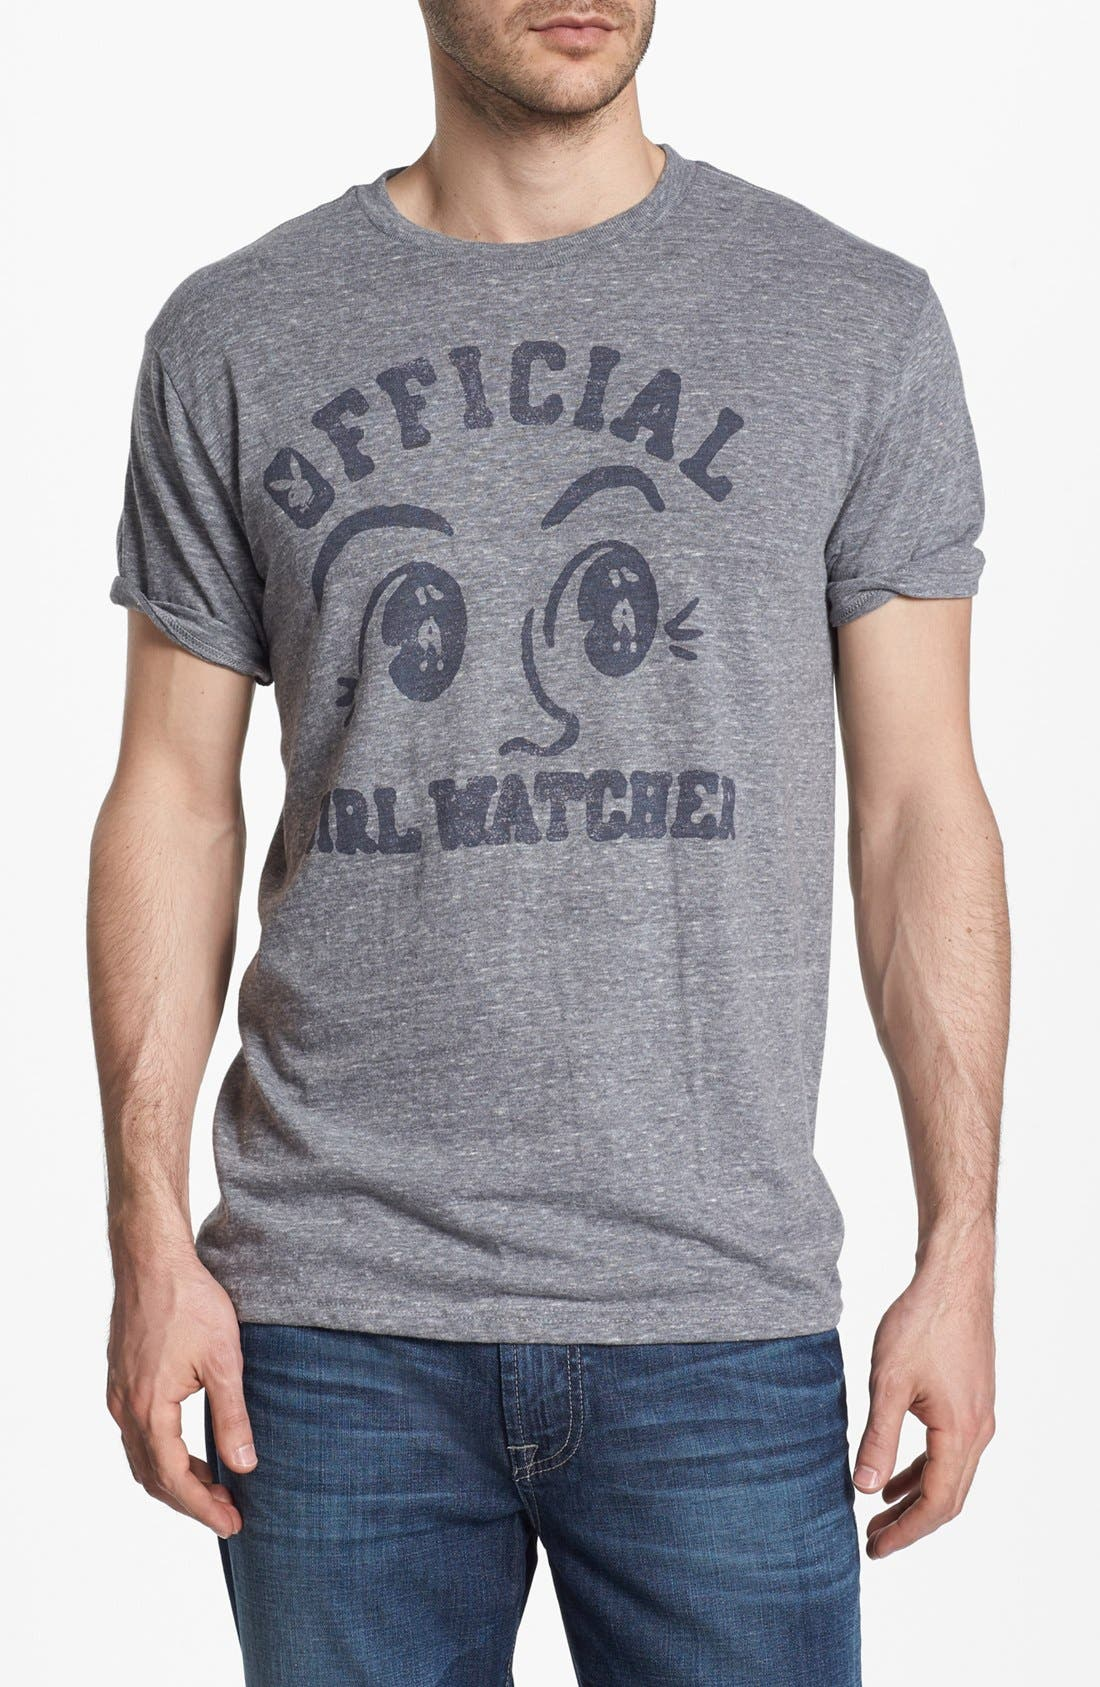 Alternate Image 1 Selected - PalmerCash 'Official Girl Watcher' Graphic T-Shirt